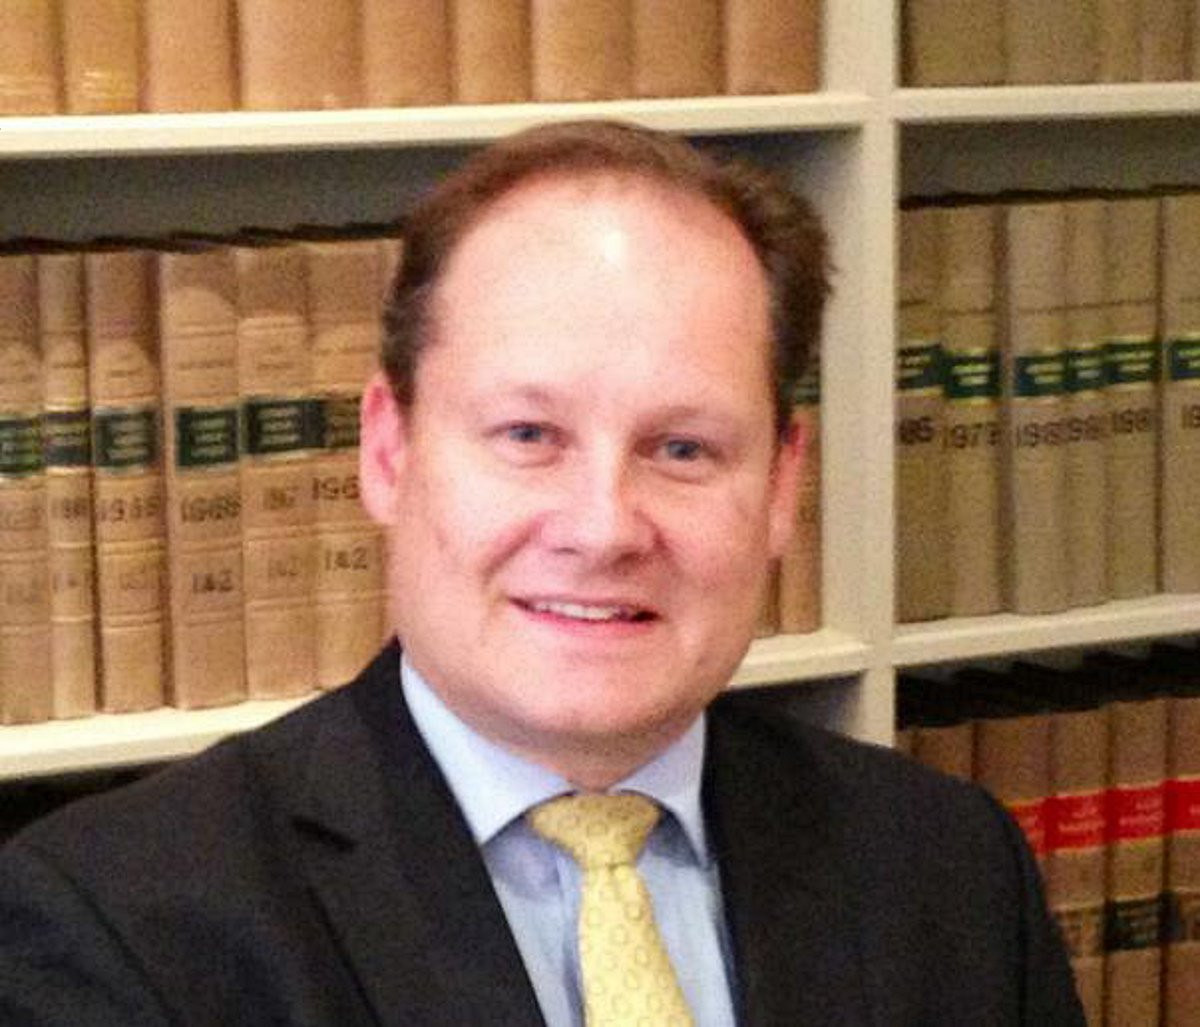 Human rights barrister says legal aid cuts will lead to 'miscarriages of justice'